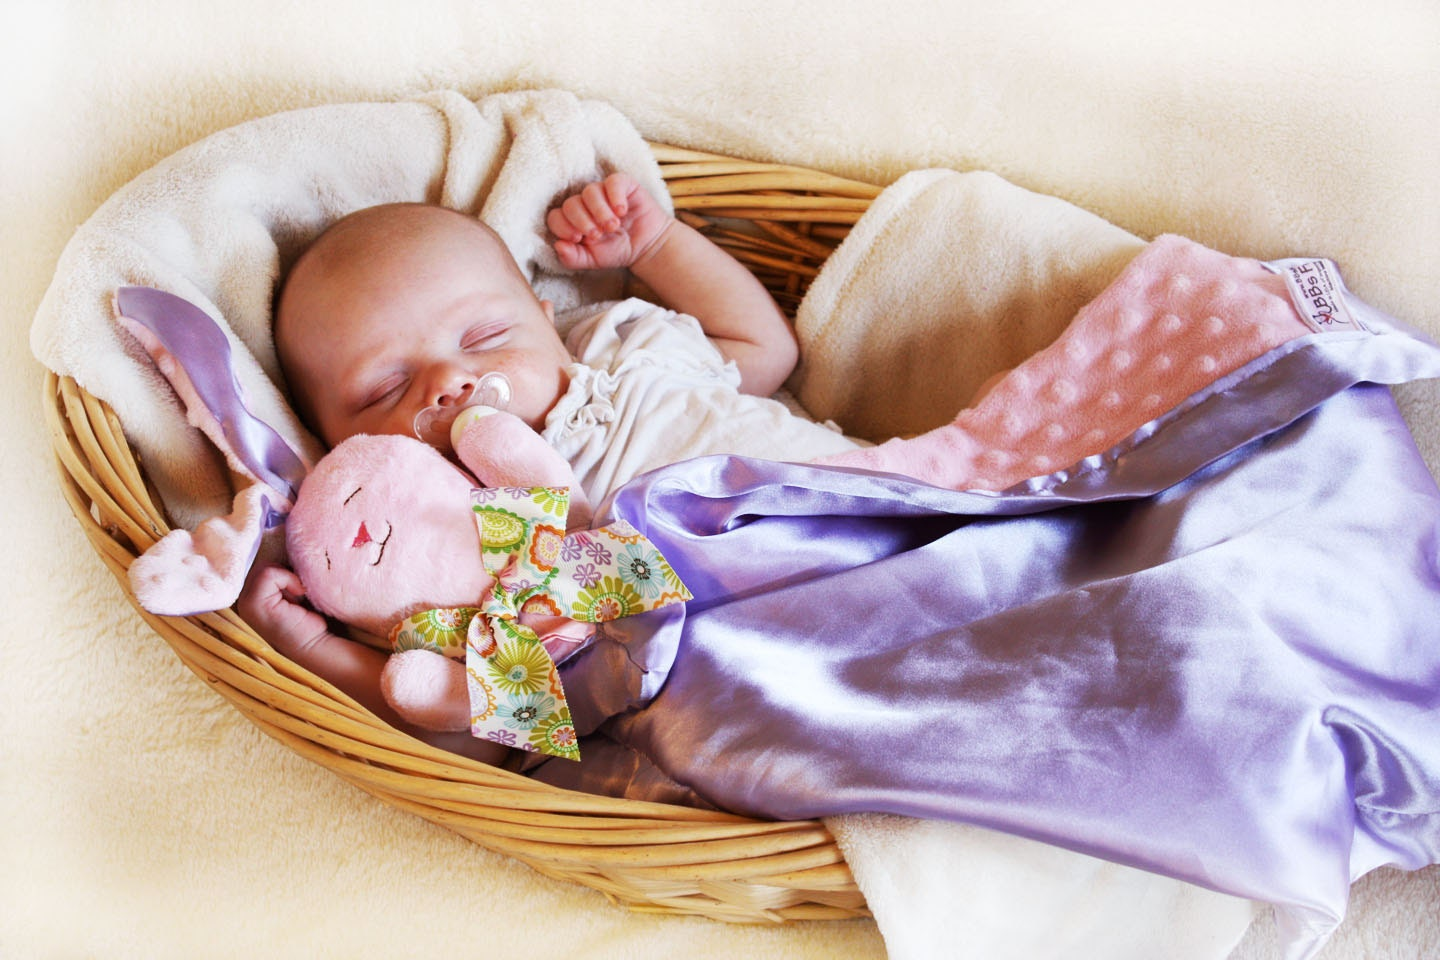 At StuffedSafari.com we've got yourAt StuffedSafari.com we've got yourbabycovered, literally! Our plushAt StuffedSafari.com we've got yourAt StuffedSafari.com we've got yourbabycovered, literally! Our plushbaby blankets and animal security blanketsare more than just blankies, they're also plush